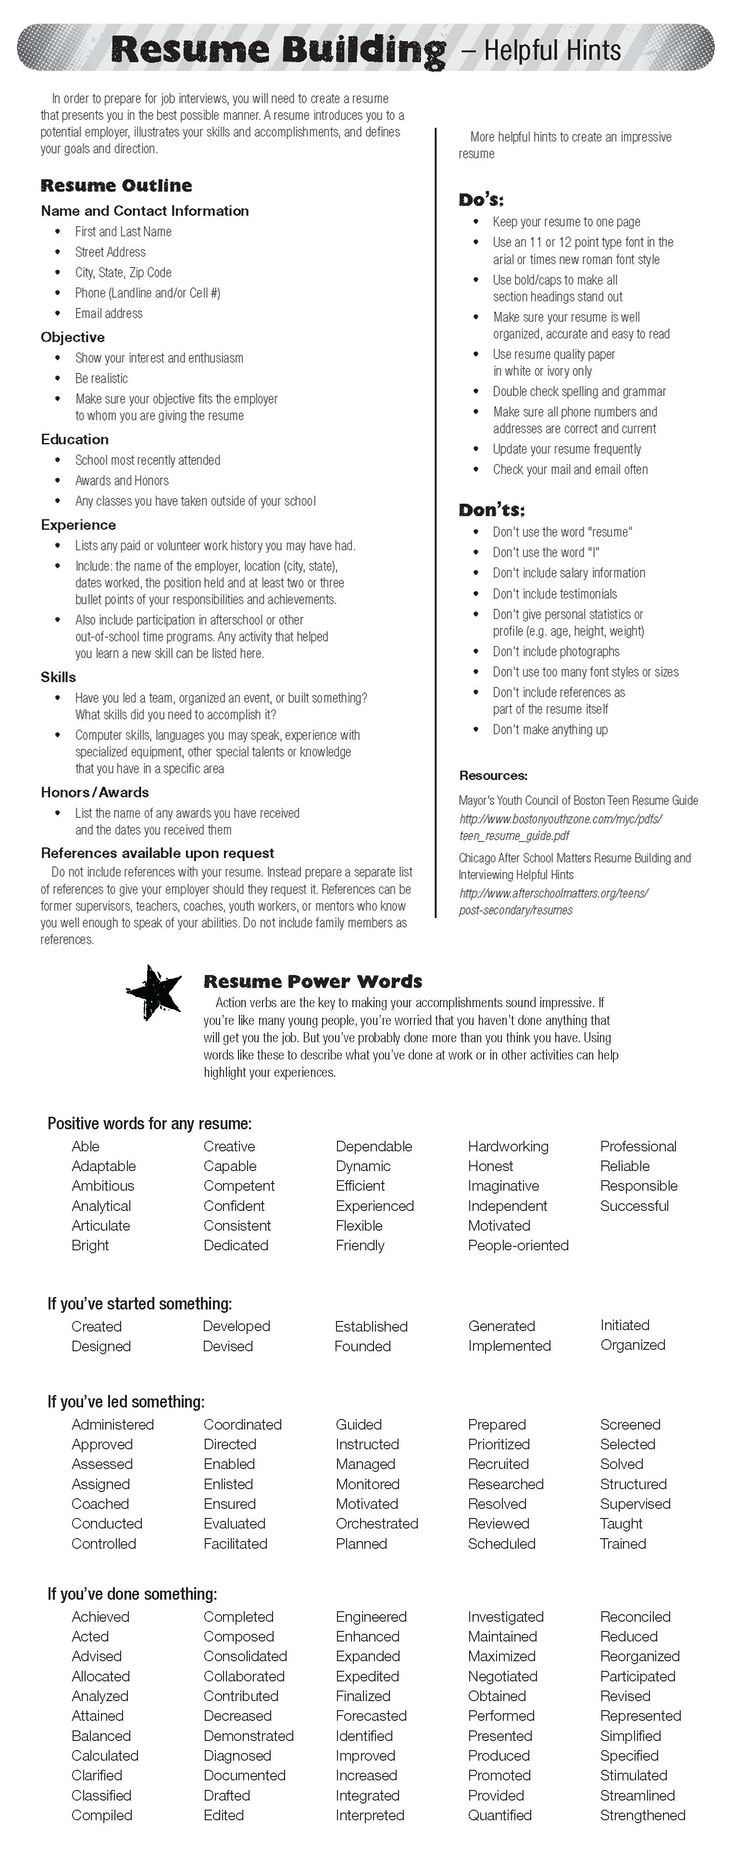 Opposenewapstandardsus  Stunning  Ideas About Resume On Pinterest  Cv Format Resume Cv And  With Licious  Ideas About Resume On Pinterest  Cv Format Resume Cv And Resume Templates With Appealing How Create A Resume Also Cosmetology Instructor Resume In Addition Buy Resume Templates And Resume Mechanical Engineer As Well As Resume Preview Additionally Work Resume Example From Pinterestcom With Opposenewapstandardsus  Licious  Ideas About Resume On Pinterest  Cv Format Resume Cv And  With Appealing  Ideas About Resume On Pinterest  Cv Format Resume Cv And Resume Templates And Stunning How Create A Resume Also Cosmetology Instructor Resume In Addition Buy Resume Templates From Pinterestcom